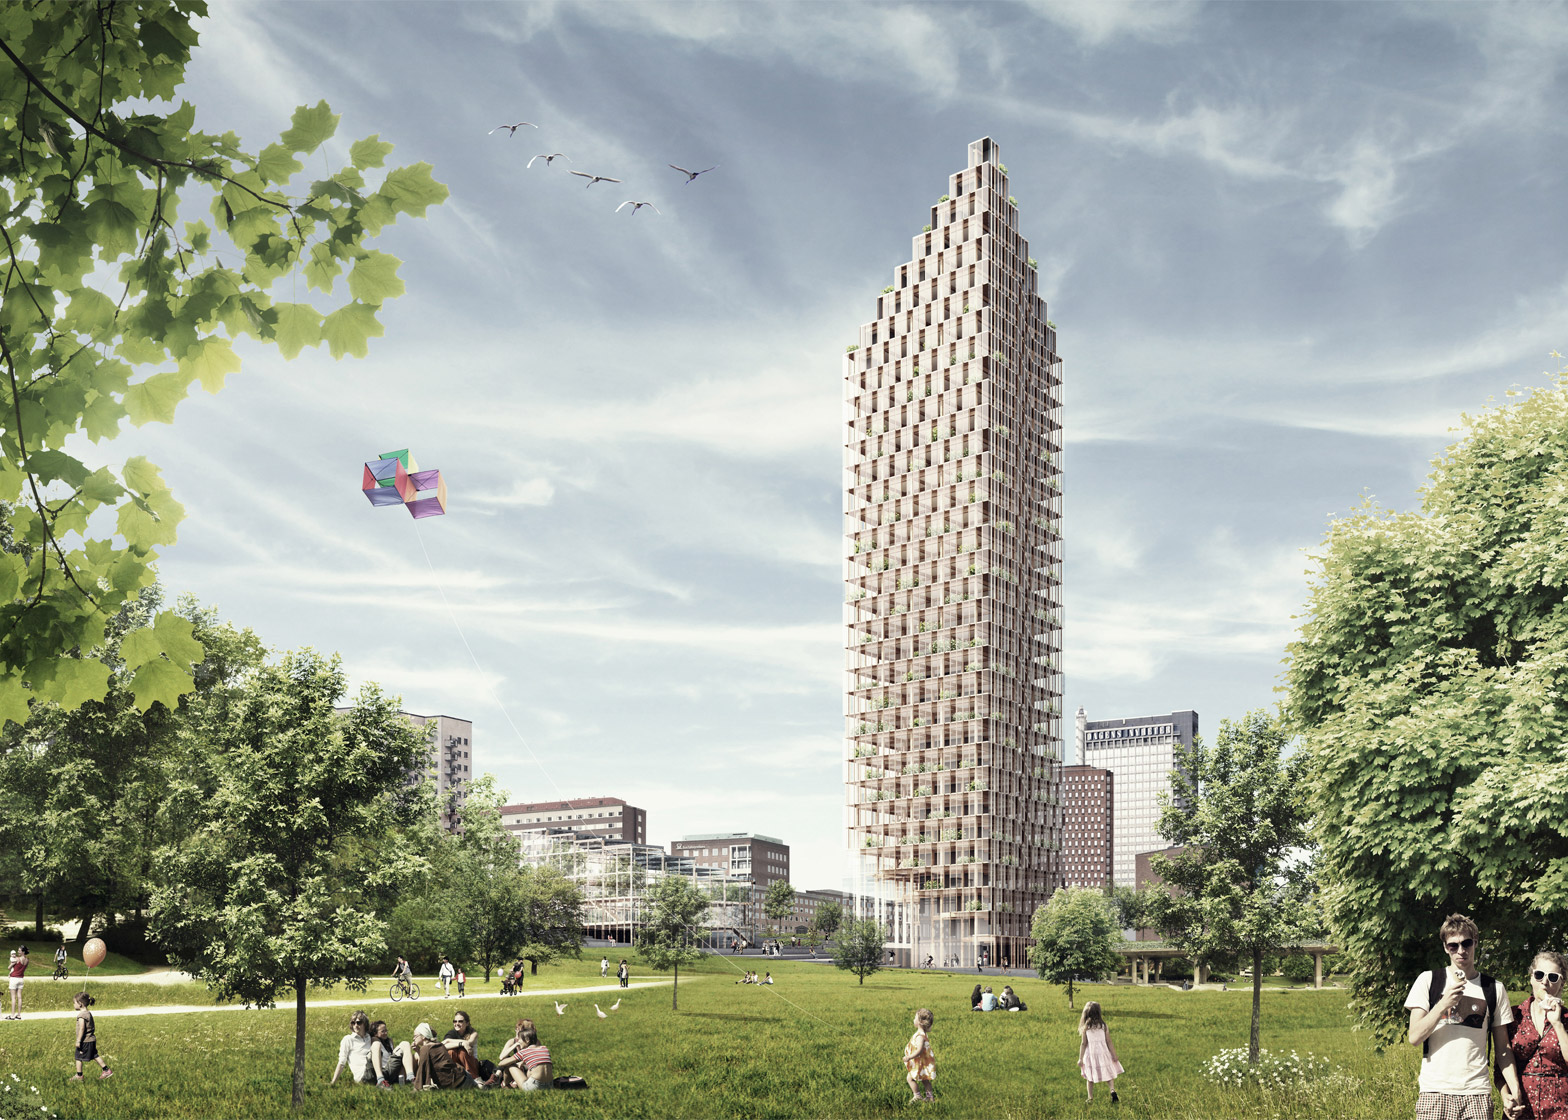 Wooden skyscraper by CF Møller